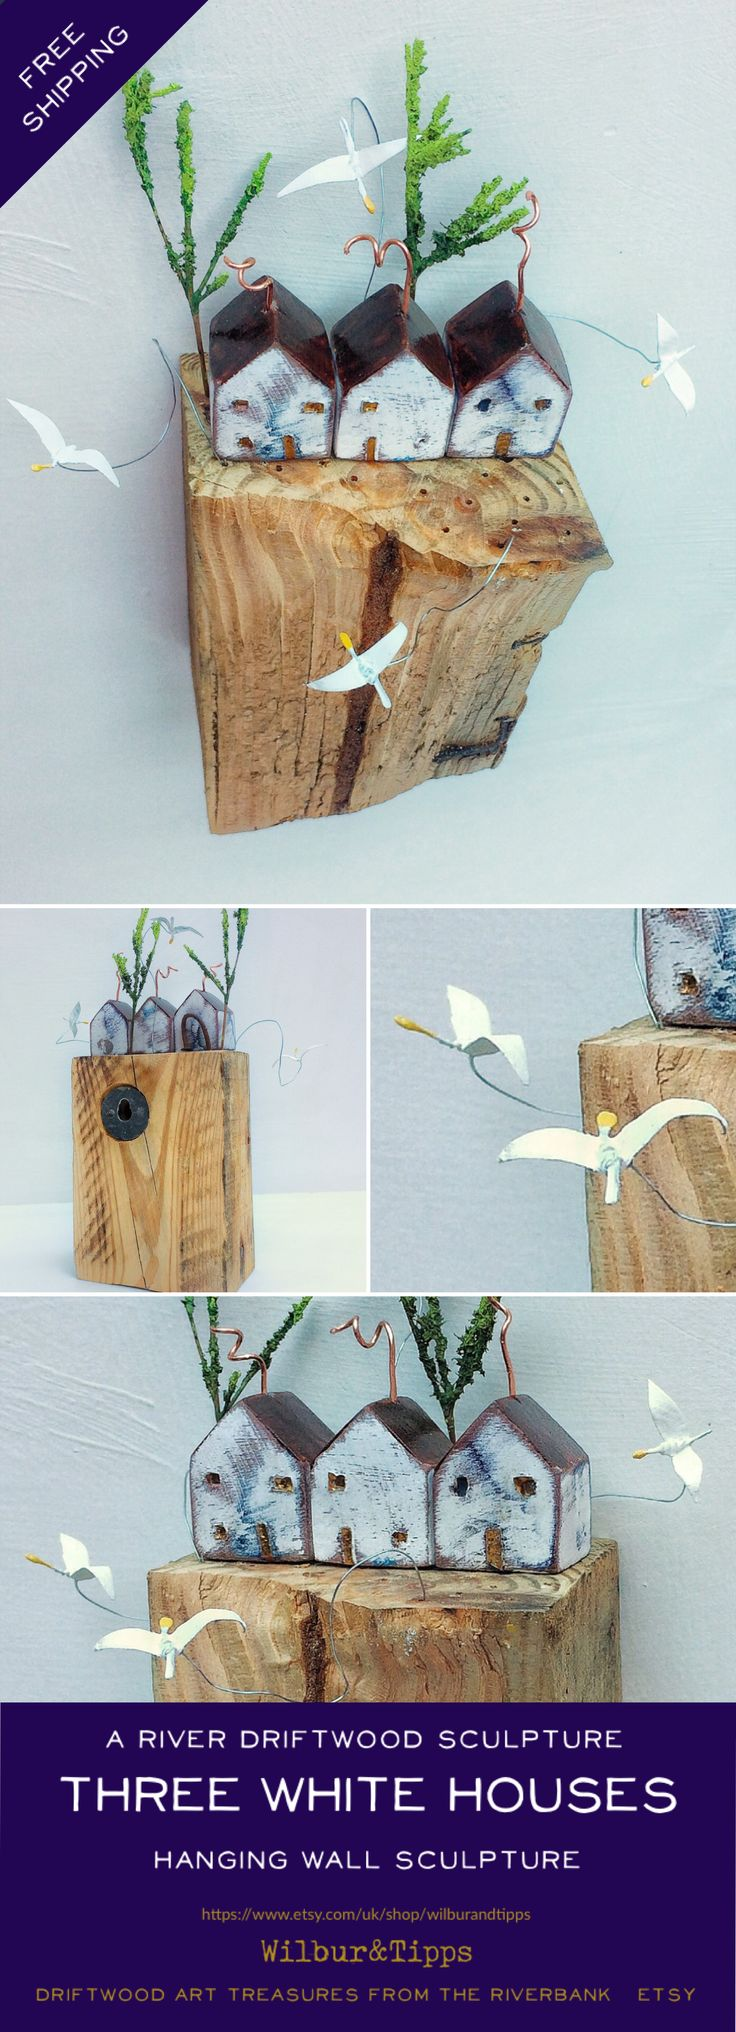 £14.99 / €16.96  FREE DELIVERY Europe and UK Wall hanging driftwood sculpture. Individual sculptured pieces that you can reposition handmade, driftwood art, küsten kunst, driftwood house, driftwood sculpture, kustlijn kunst, etsy gifts, etsy, gift ideas, etsy de, Wilbur&Tipps @ Etsy